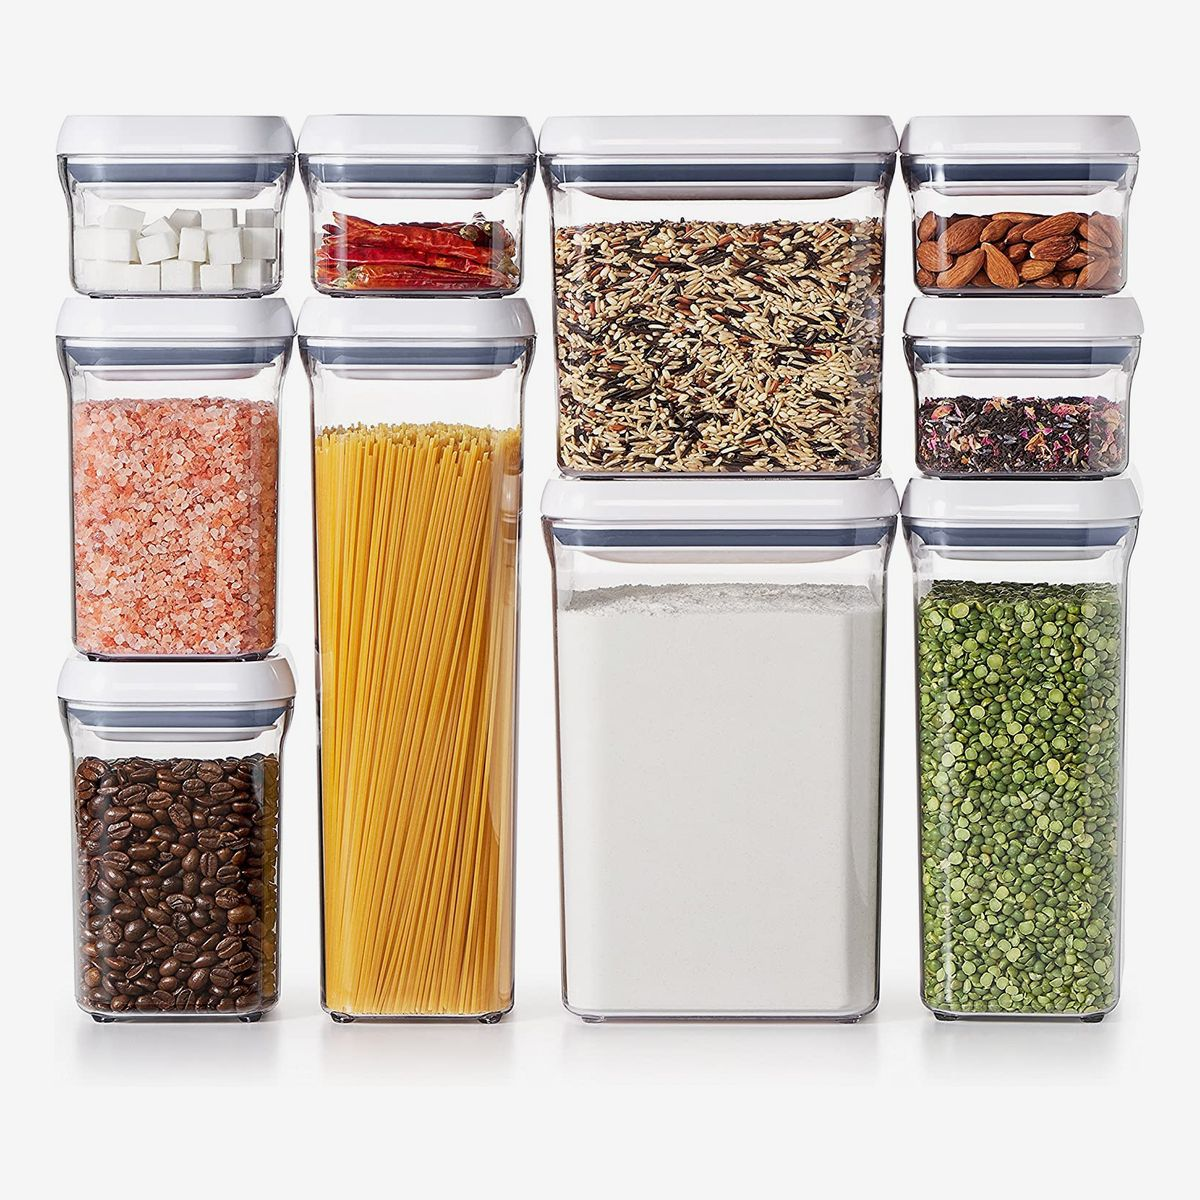 A variety of storage containers with white lids.